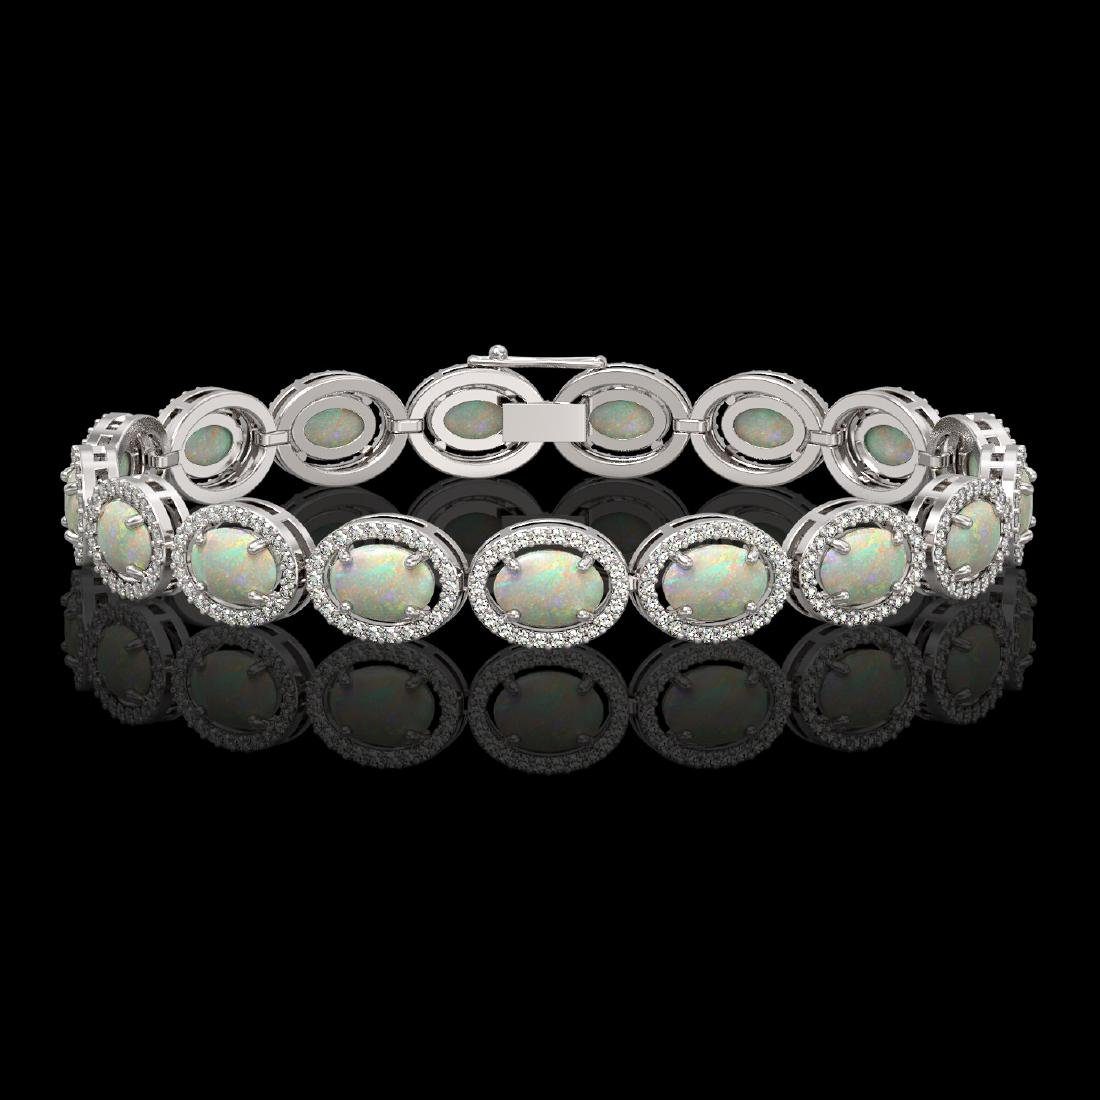 14.24 CTW Opal & Diamond Halo Bracelet 10K White Gold